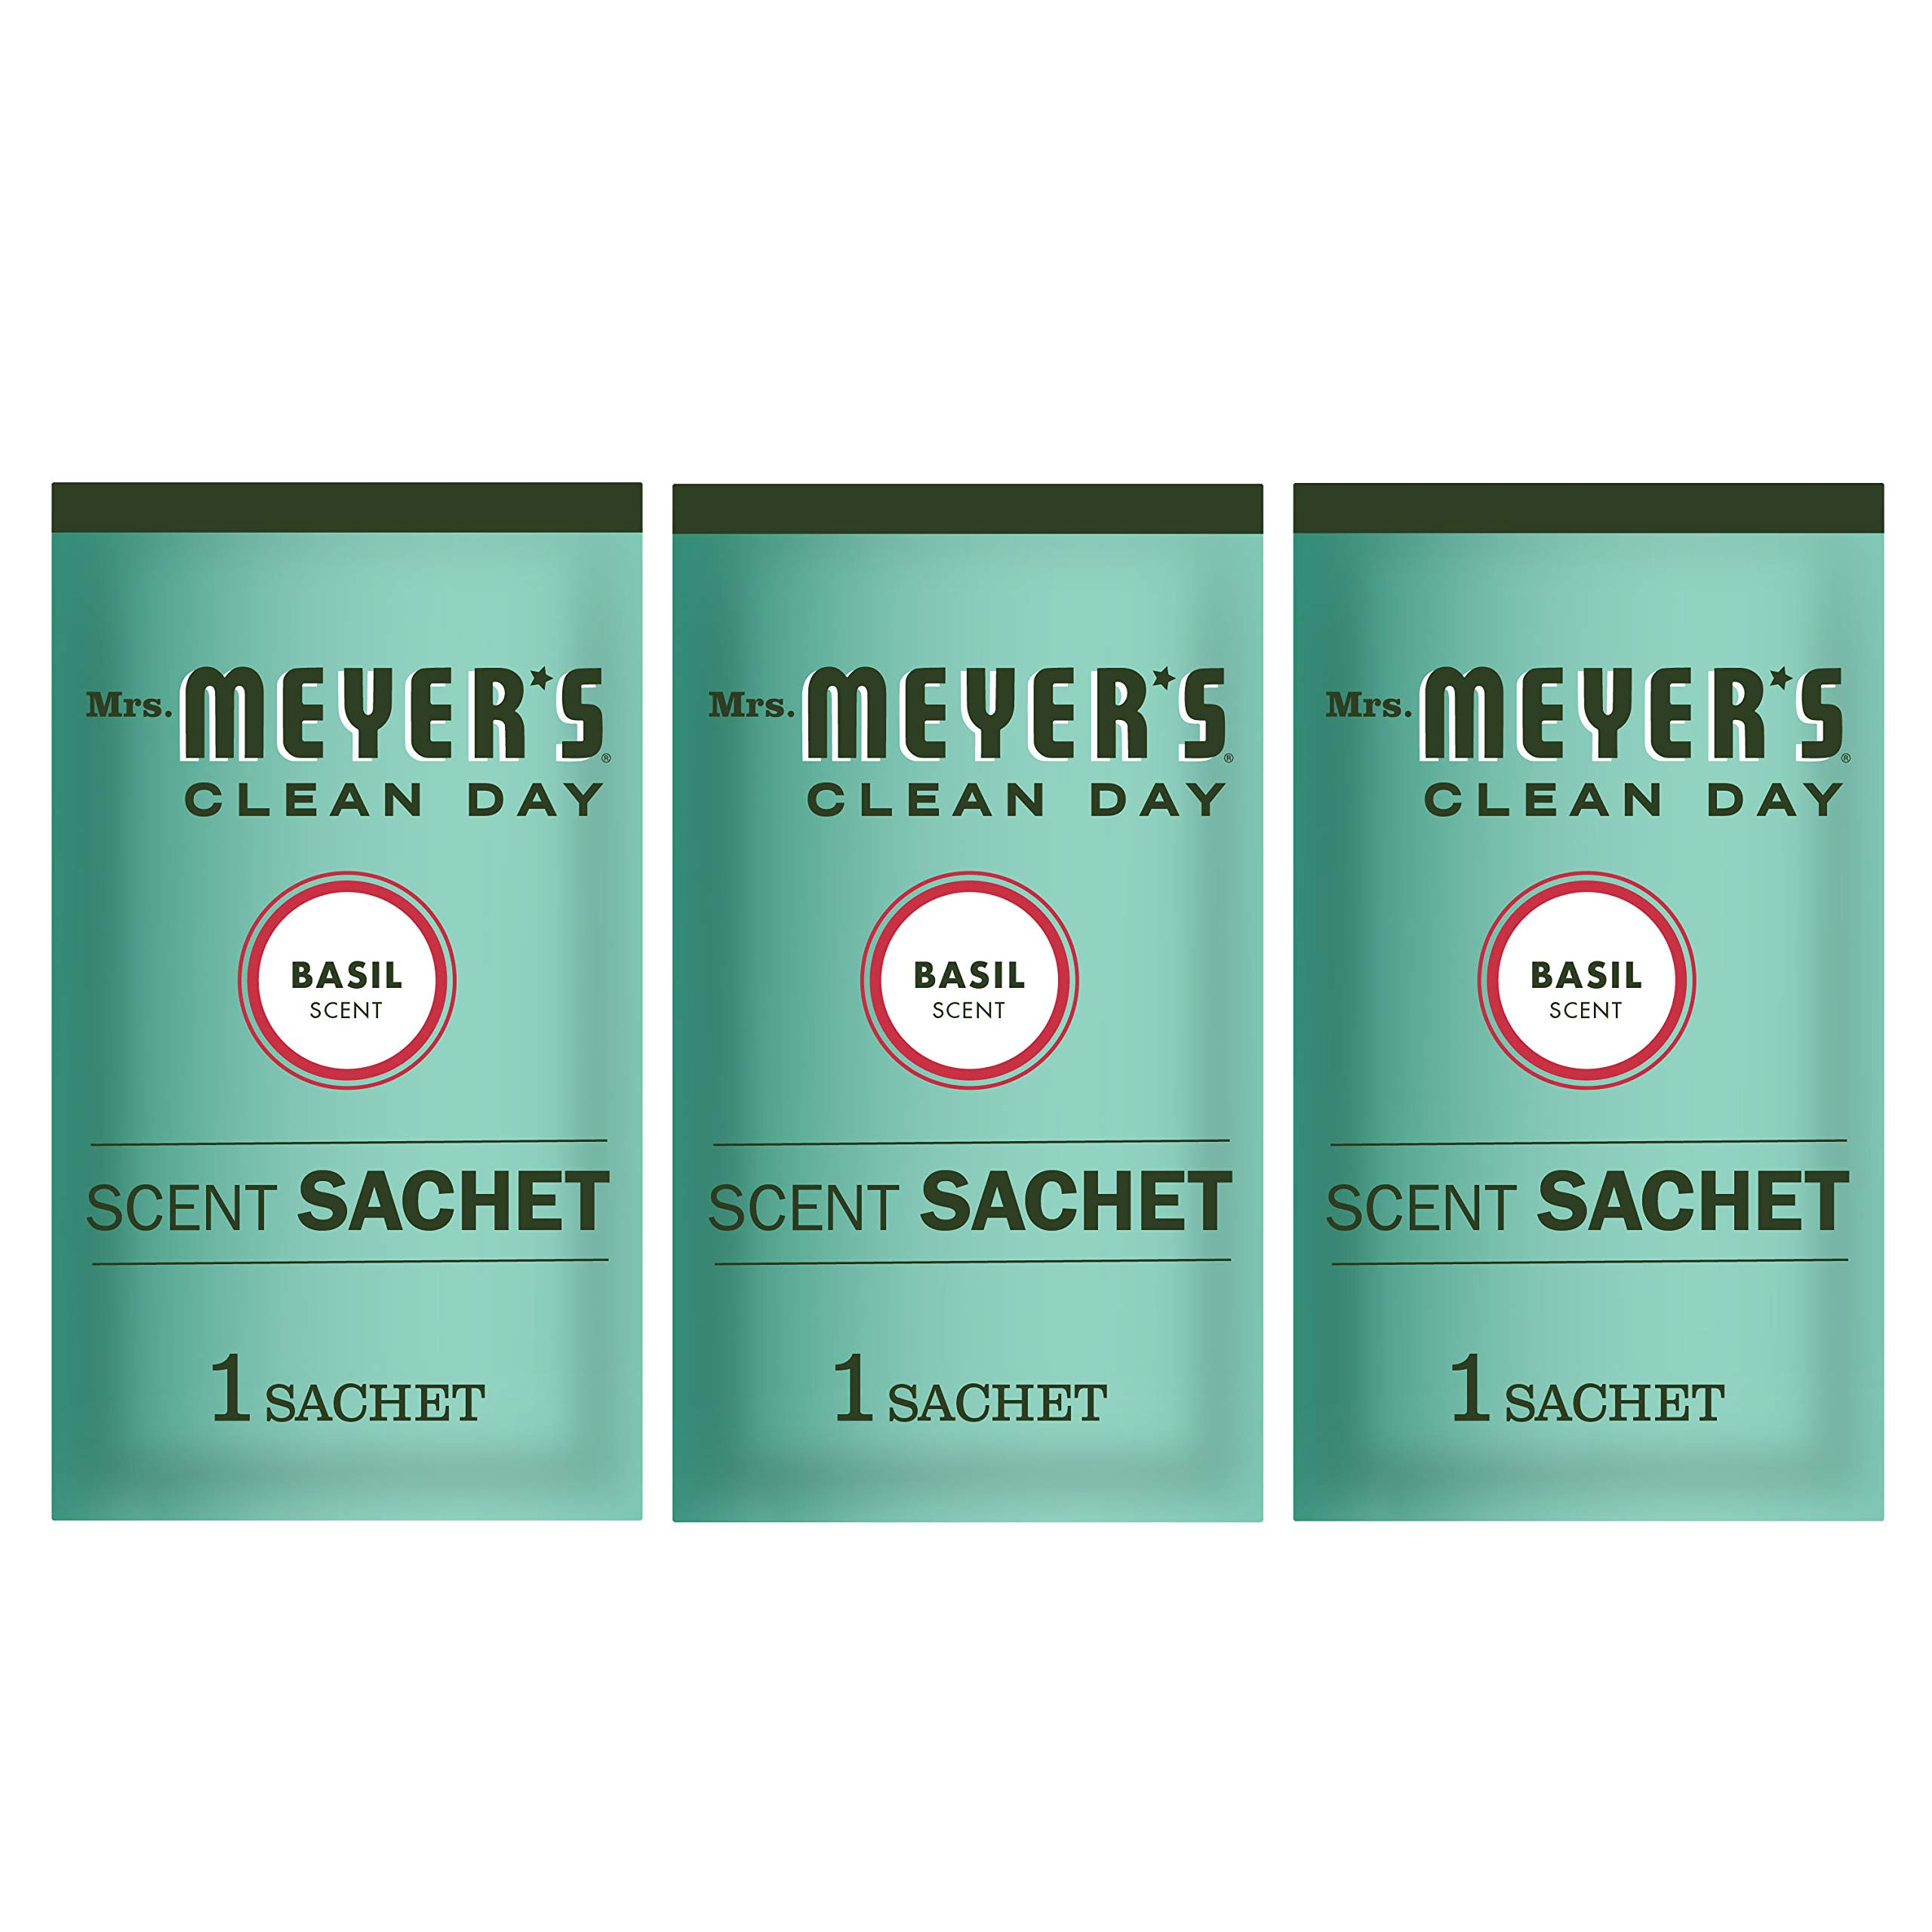 Mrs. Meyer's Clean Day Scent Sachets